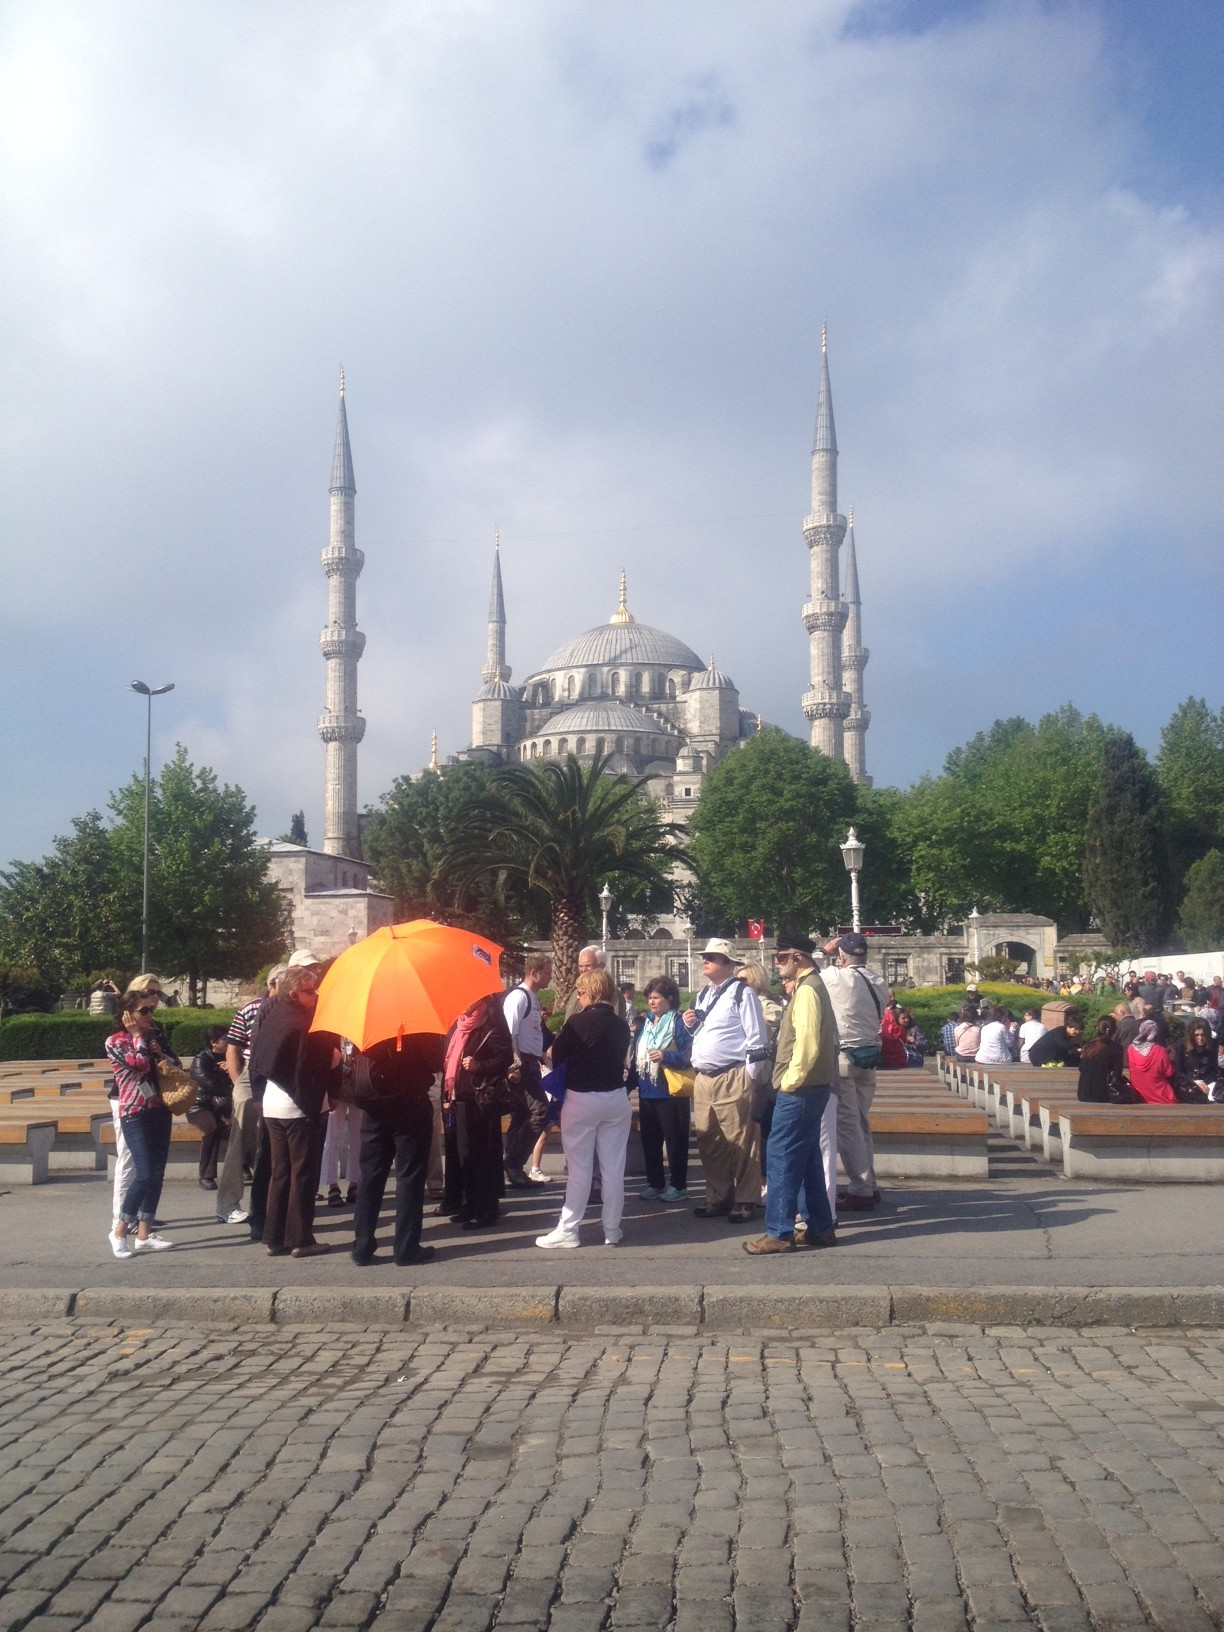 Farewell to Windstar, Hello to Istanbul